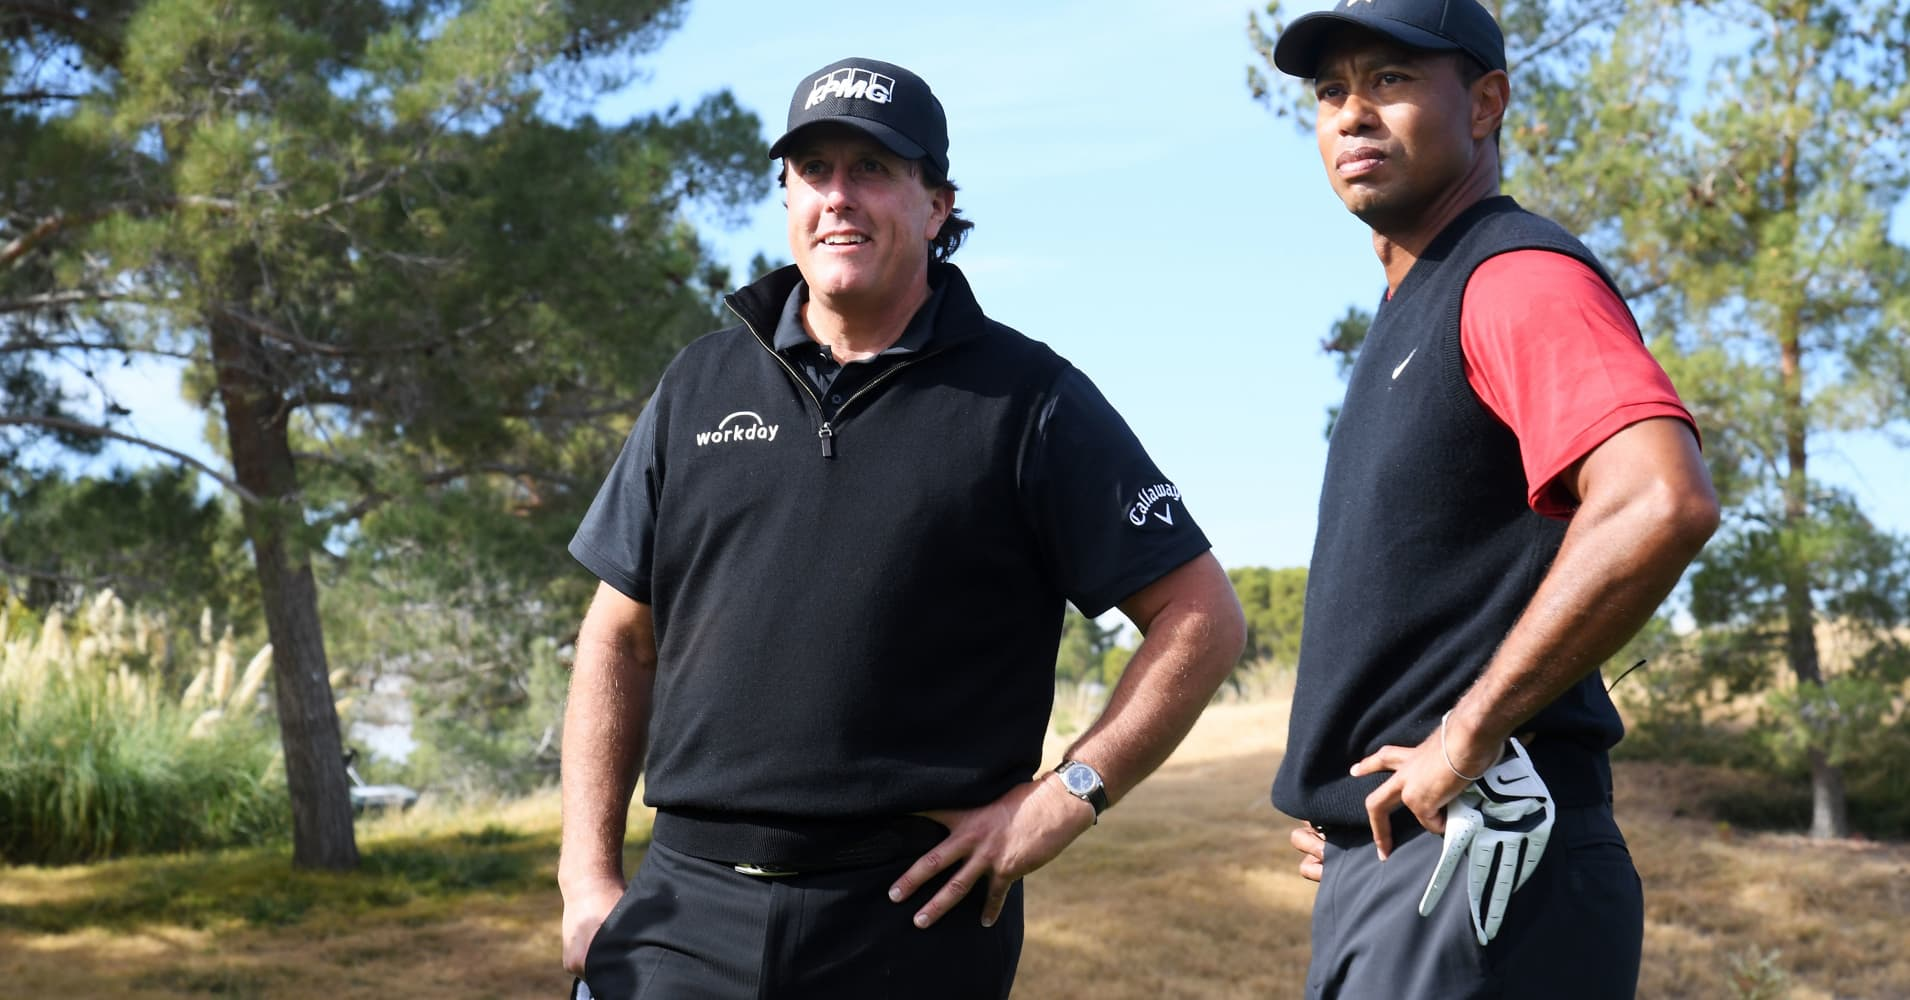 Higher-than-expected viewership of 'The Match' between Tiger Woods and Phil Mickelson forces refunds, WSJ reports